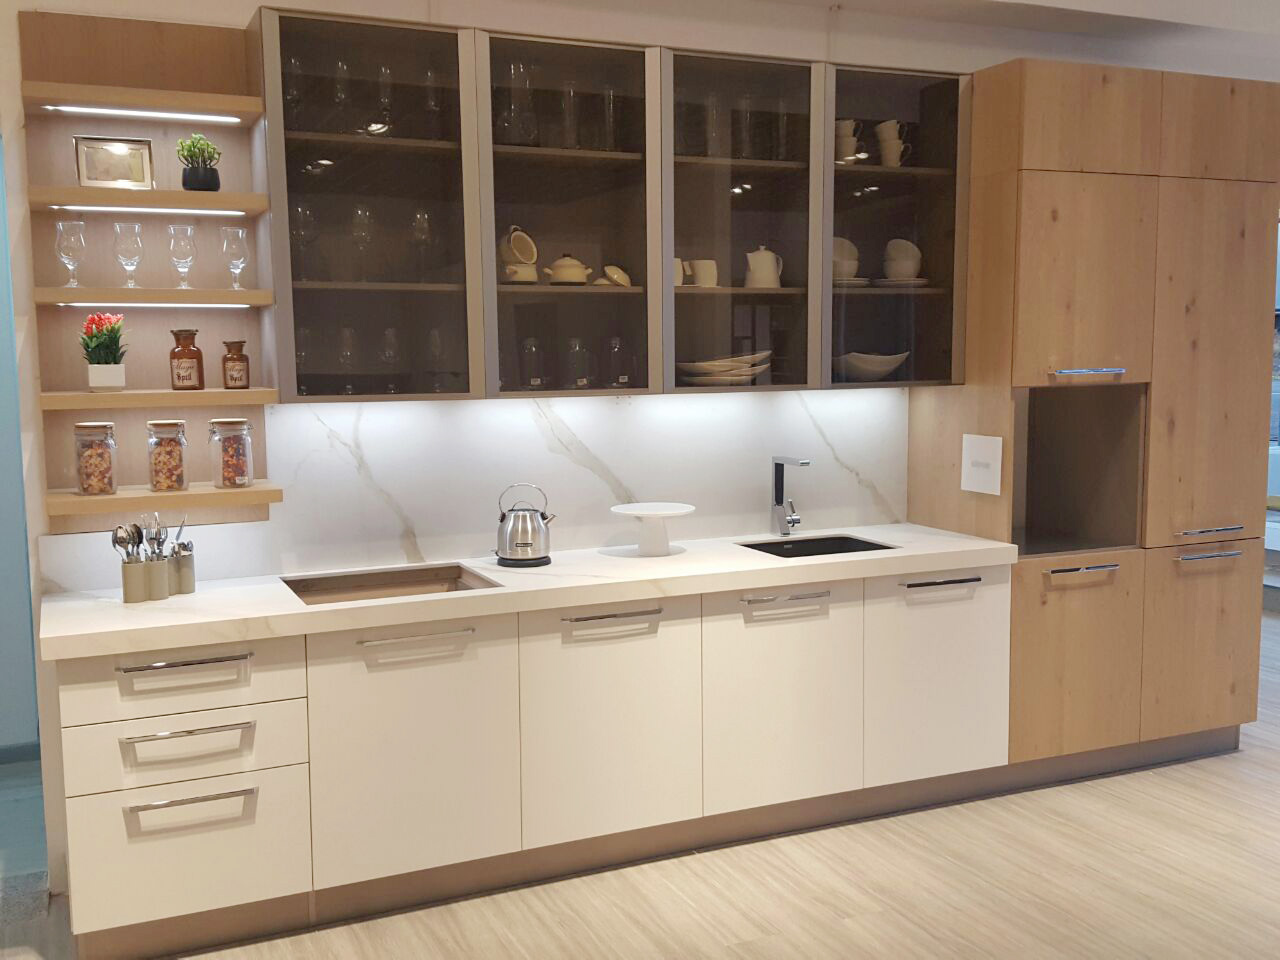 Cucine Lube Has Recently Opened A New Showroom In In Escazù, The Capital Of  The Homonymous Canton Located In The Province Of San José, Costa Rica.